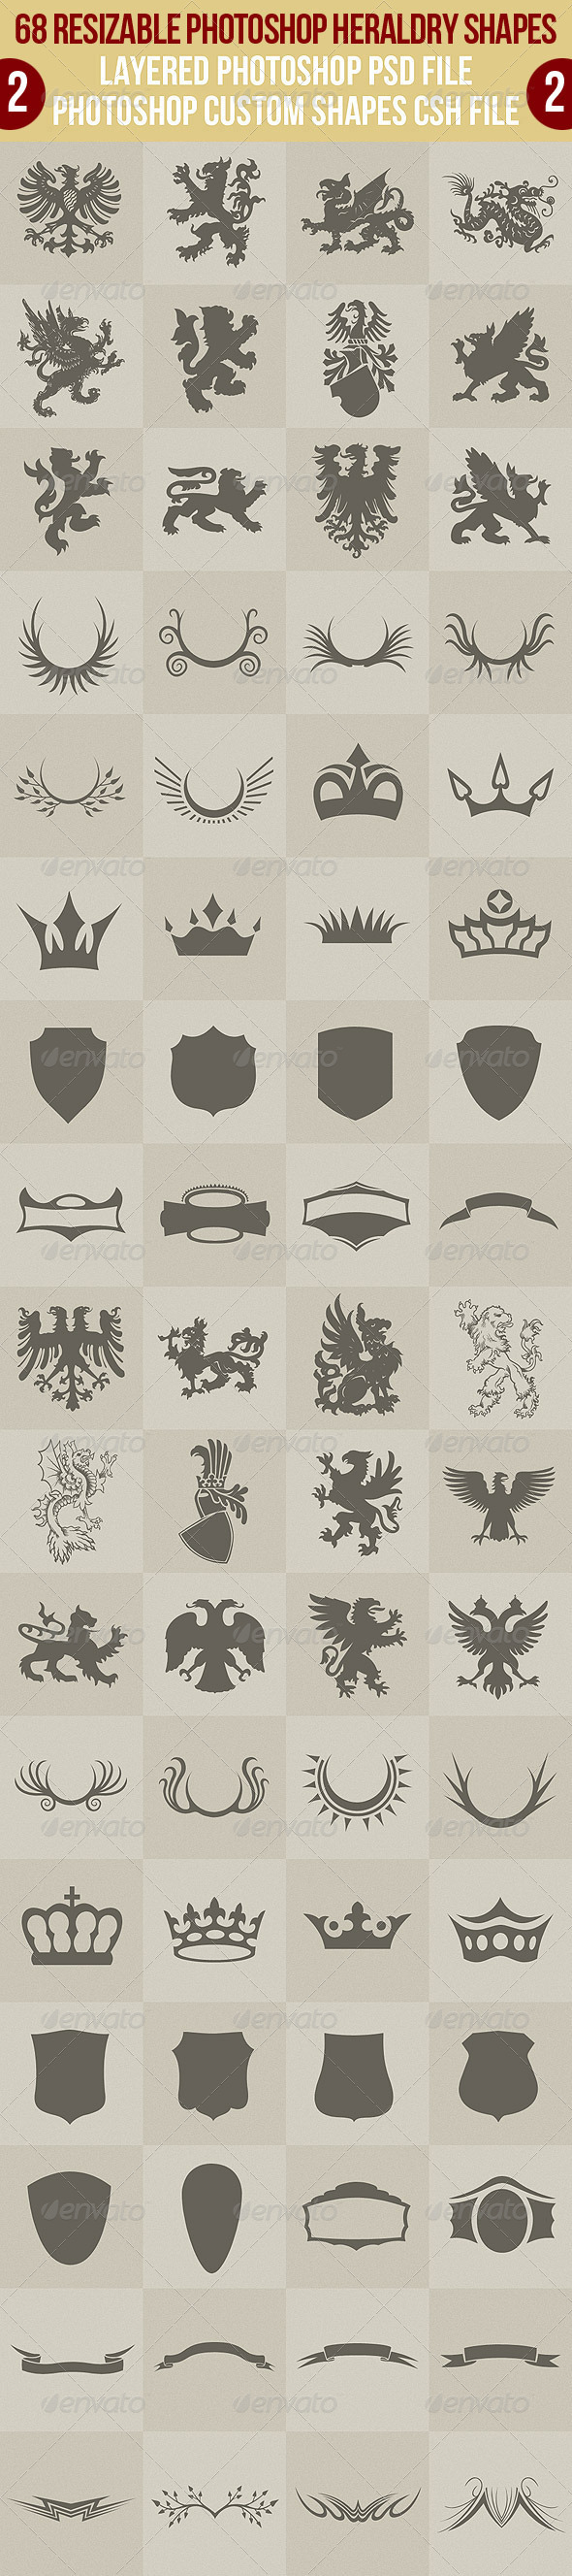 GraphicRiver 68 Photoshop Heraldry Shapes 2 2622486